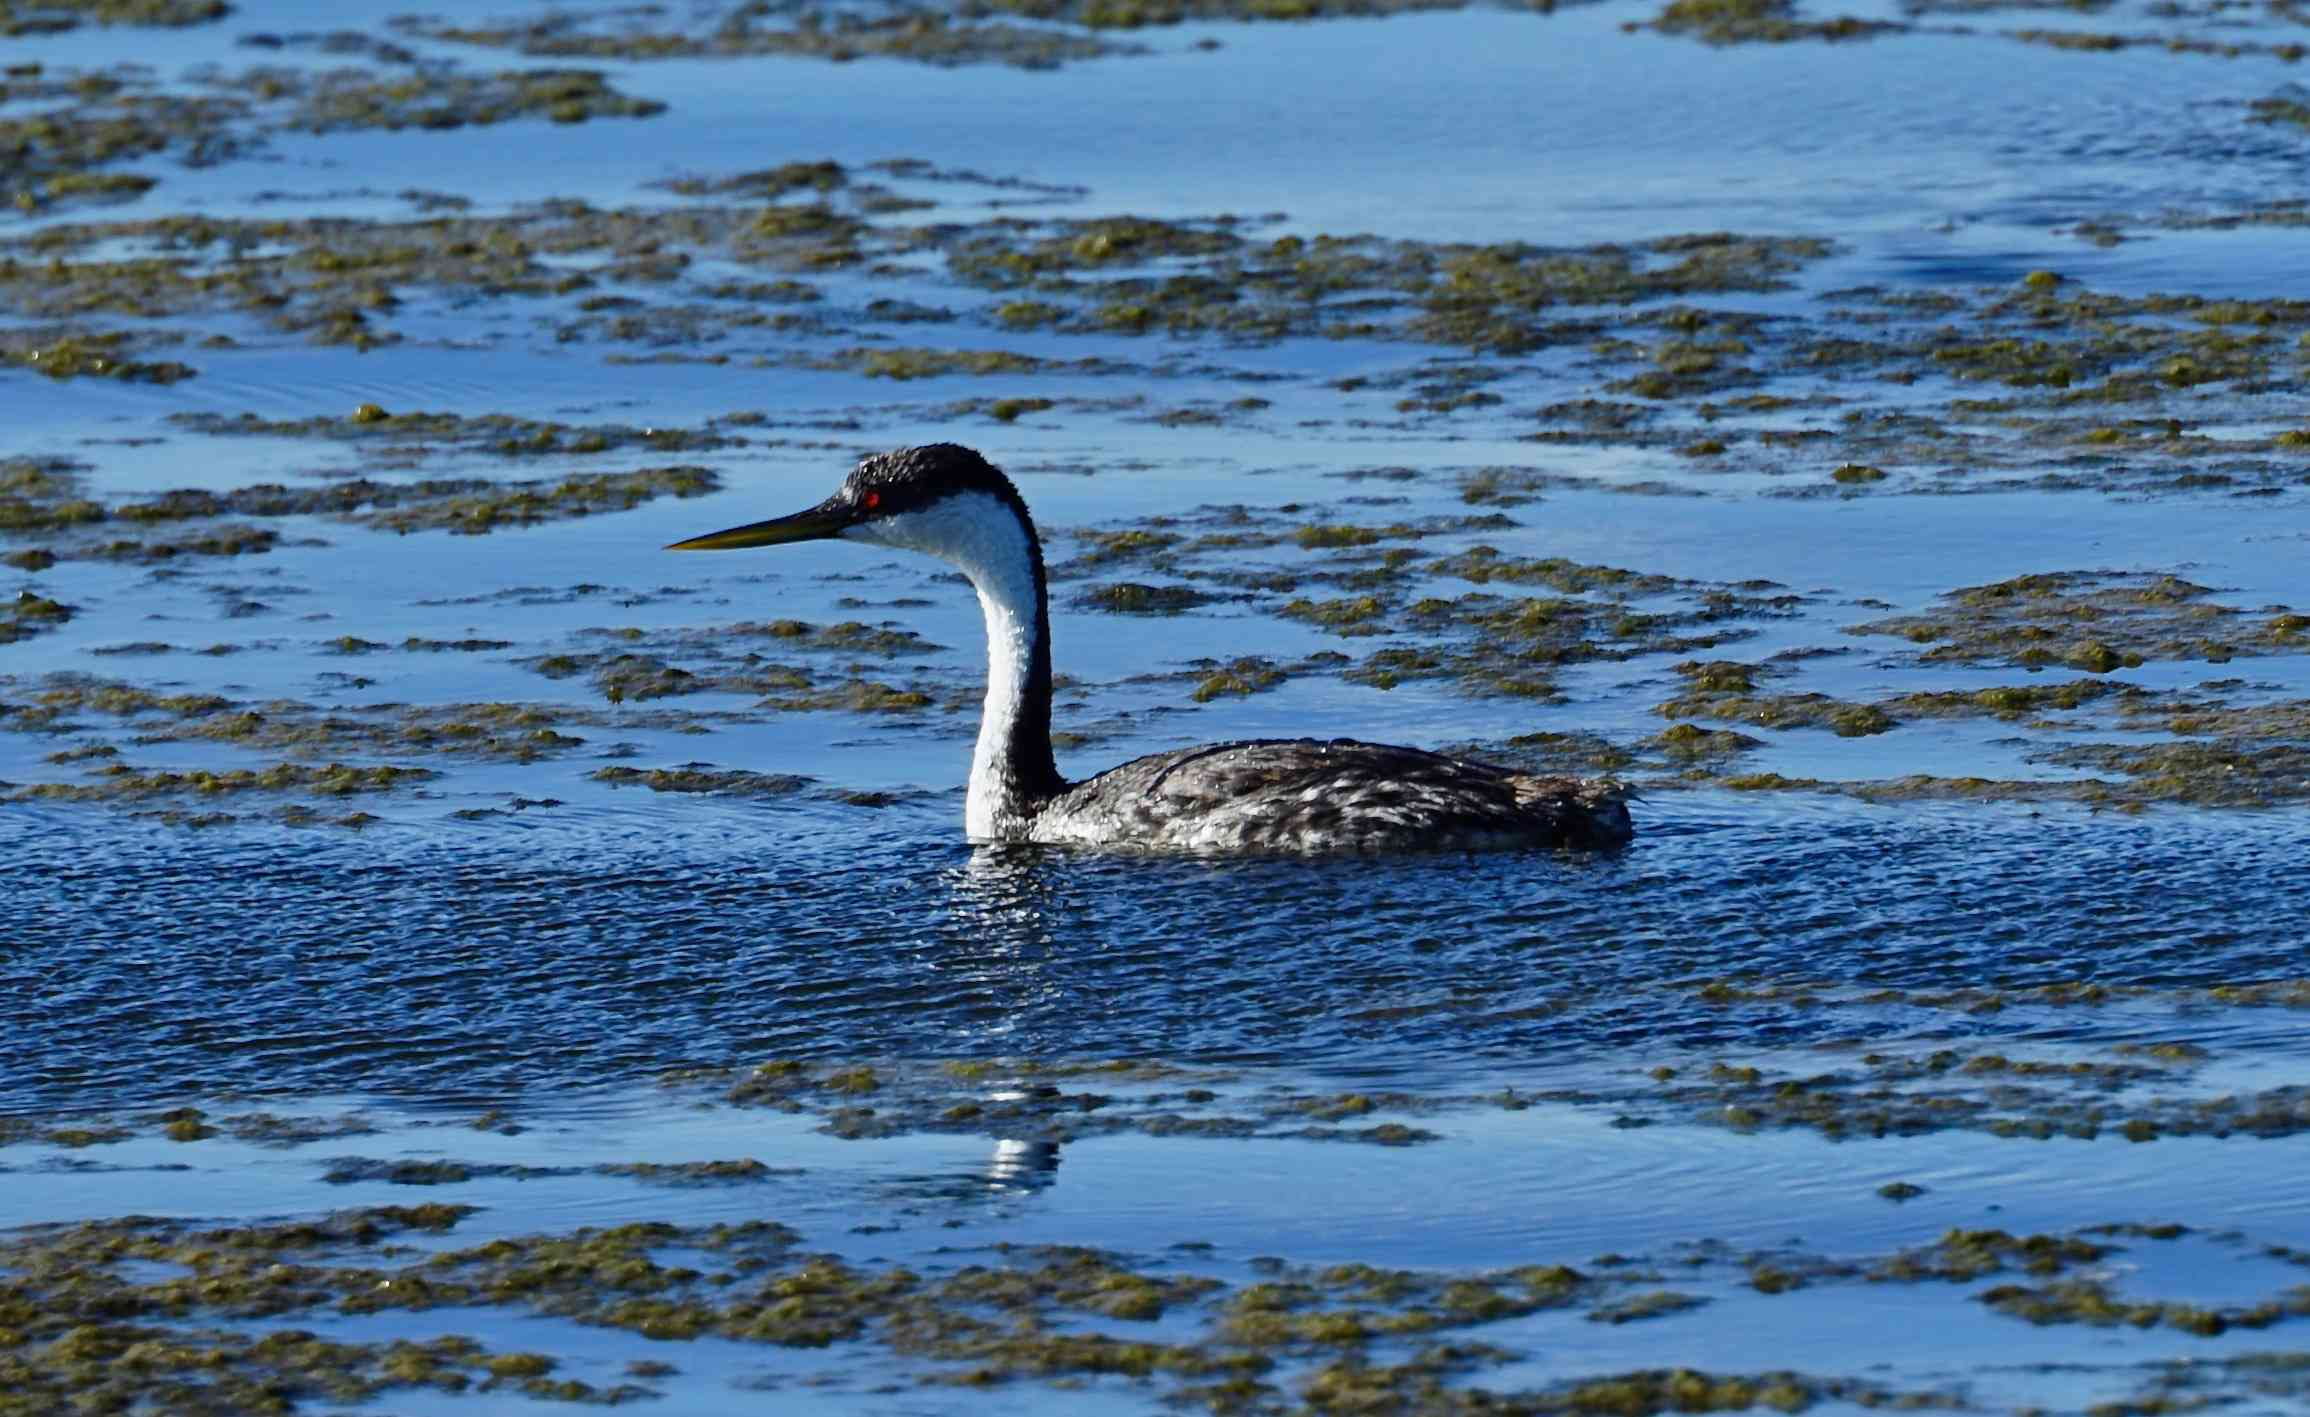 fire-eyed grebe with a long, white neck floating in Tule Lake, California surrounded by seaweed